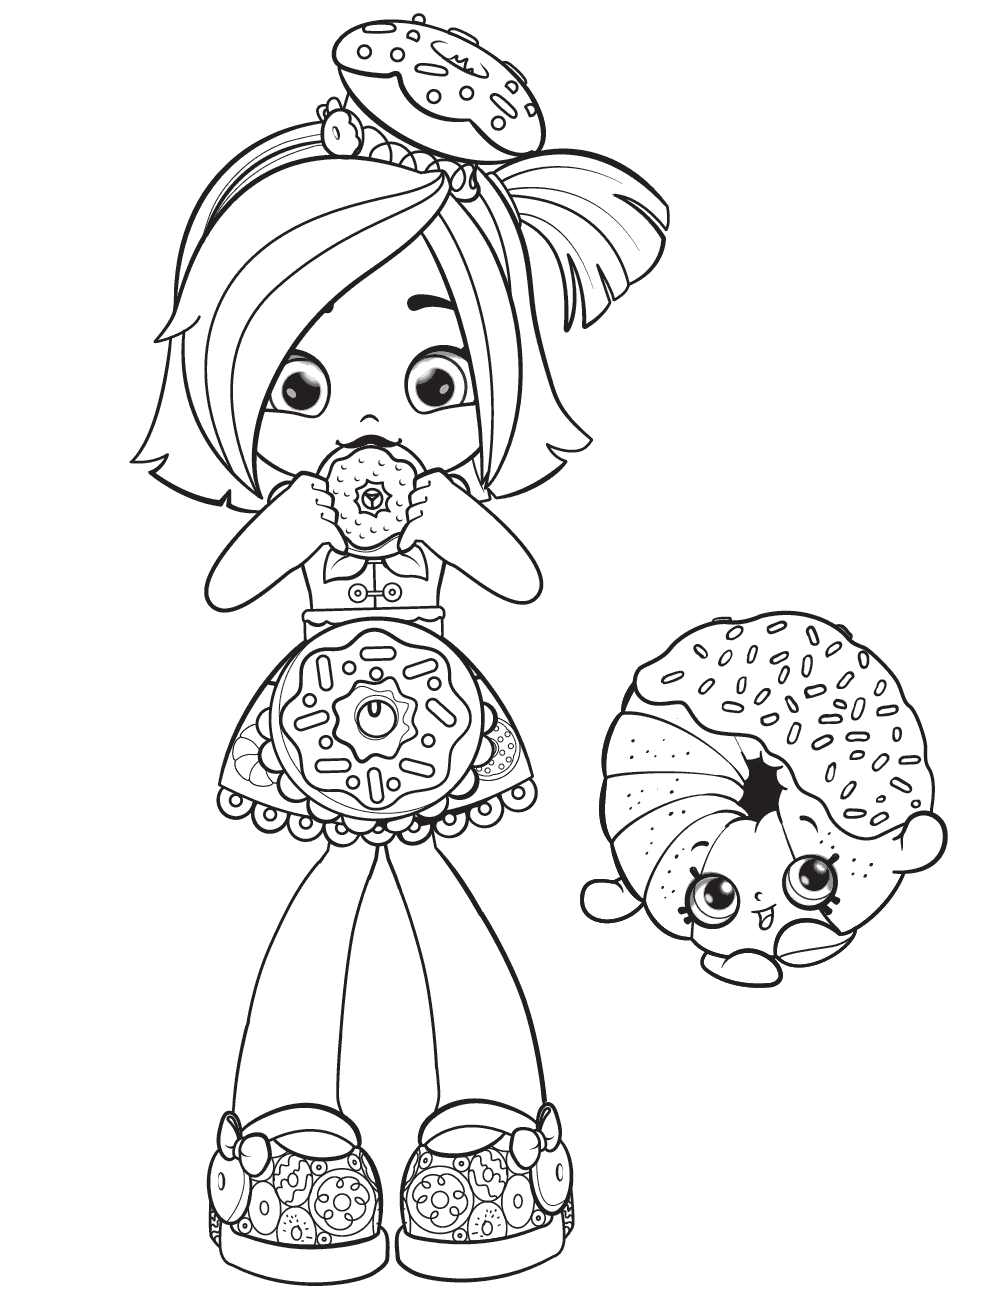 930+ Shopkins Shoppies Coloring Book Picture HD